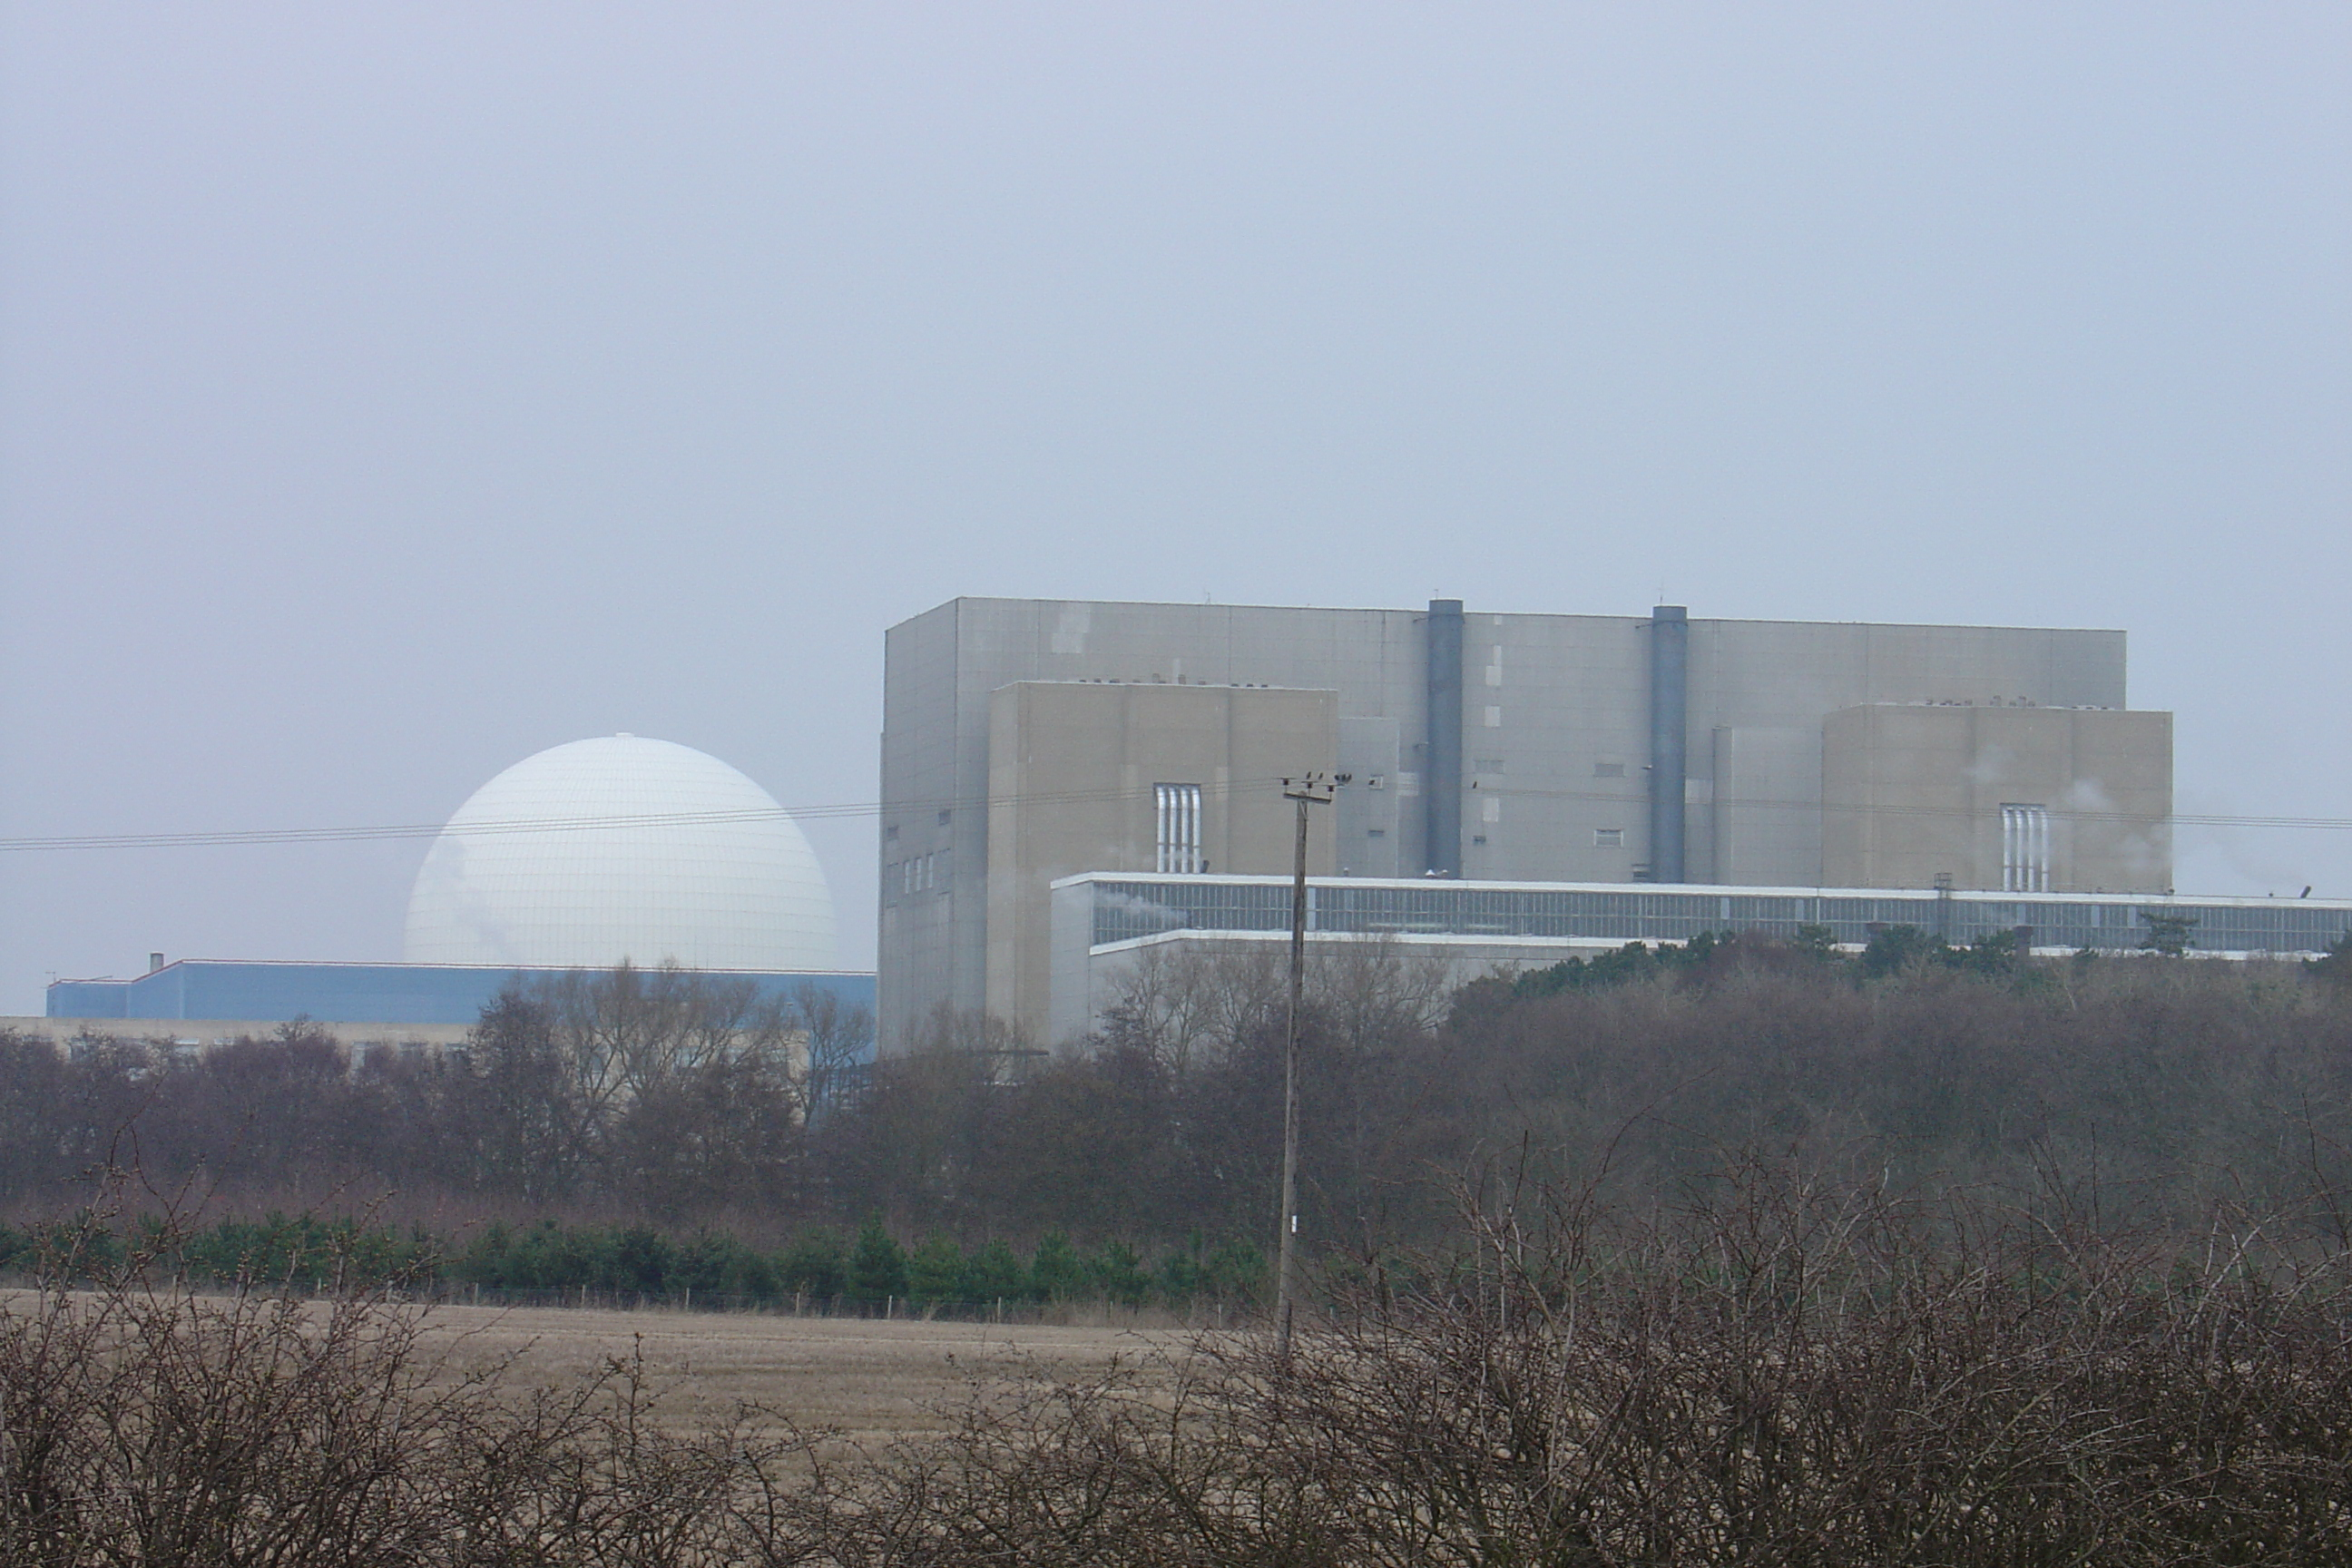 There are two nuclear power stations at Sizewell.  Sizewell A started generation in 1966. It consists of two 1000 MWt Magnox reactors, producing a total output of 420 MWe. The power station is due to start decommissioning in 2007. The Sizewell B nuclear reactor is UK's only large pressurised water r...